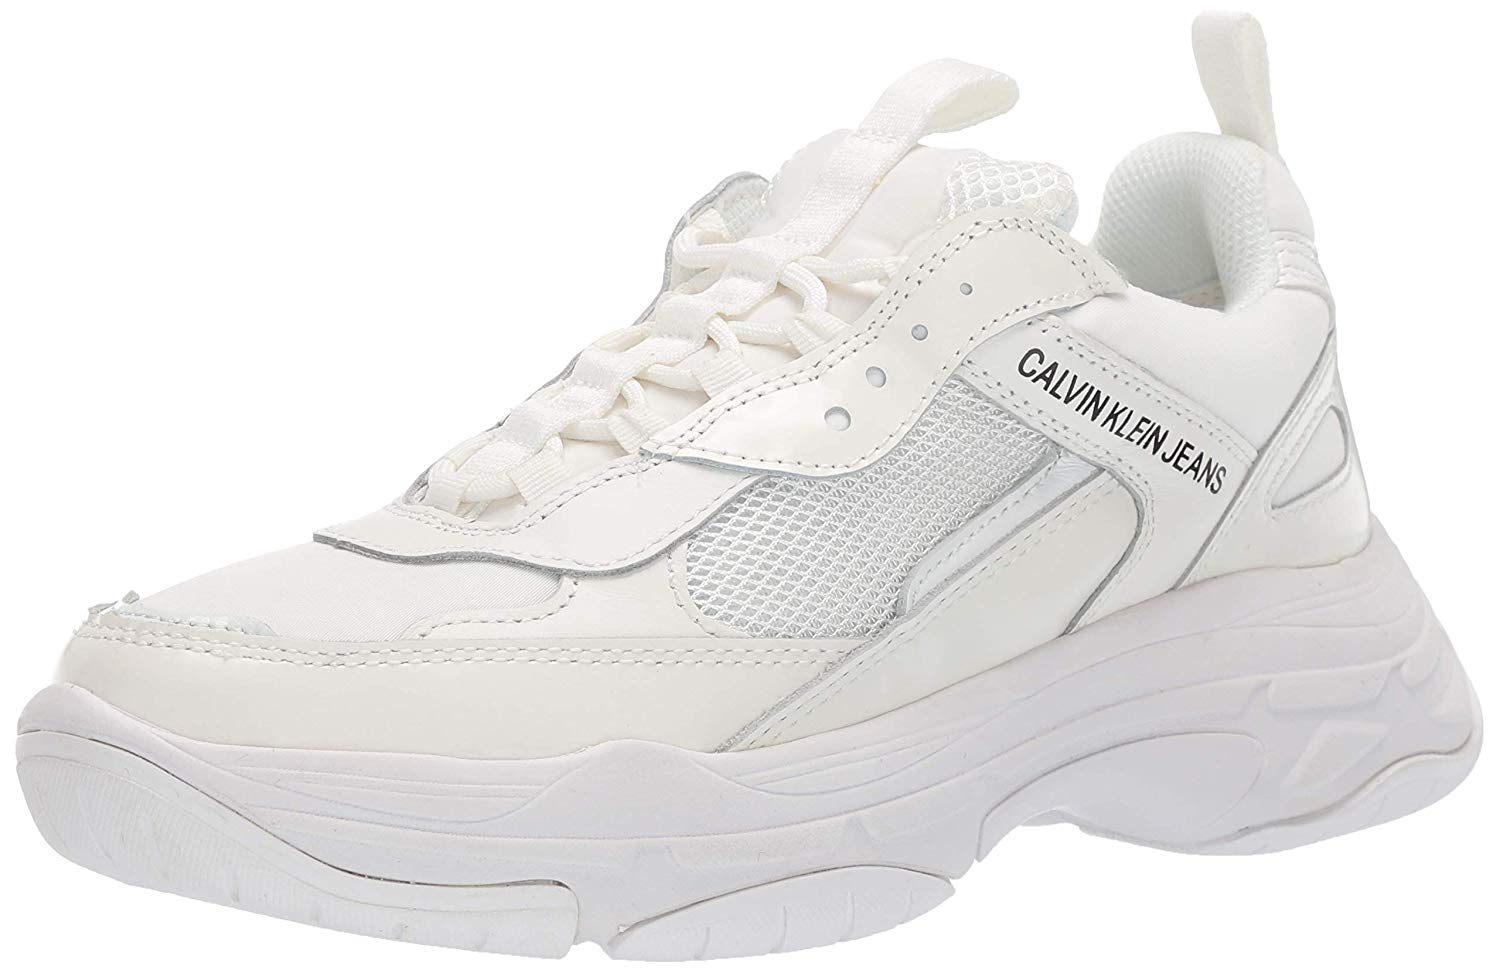 e737b4b6ce7 Coolest Ugly Dad Sneakers For Women - 2019 Trends